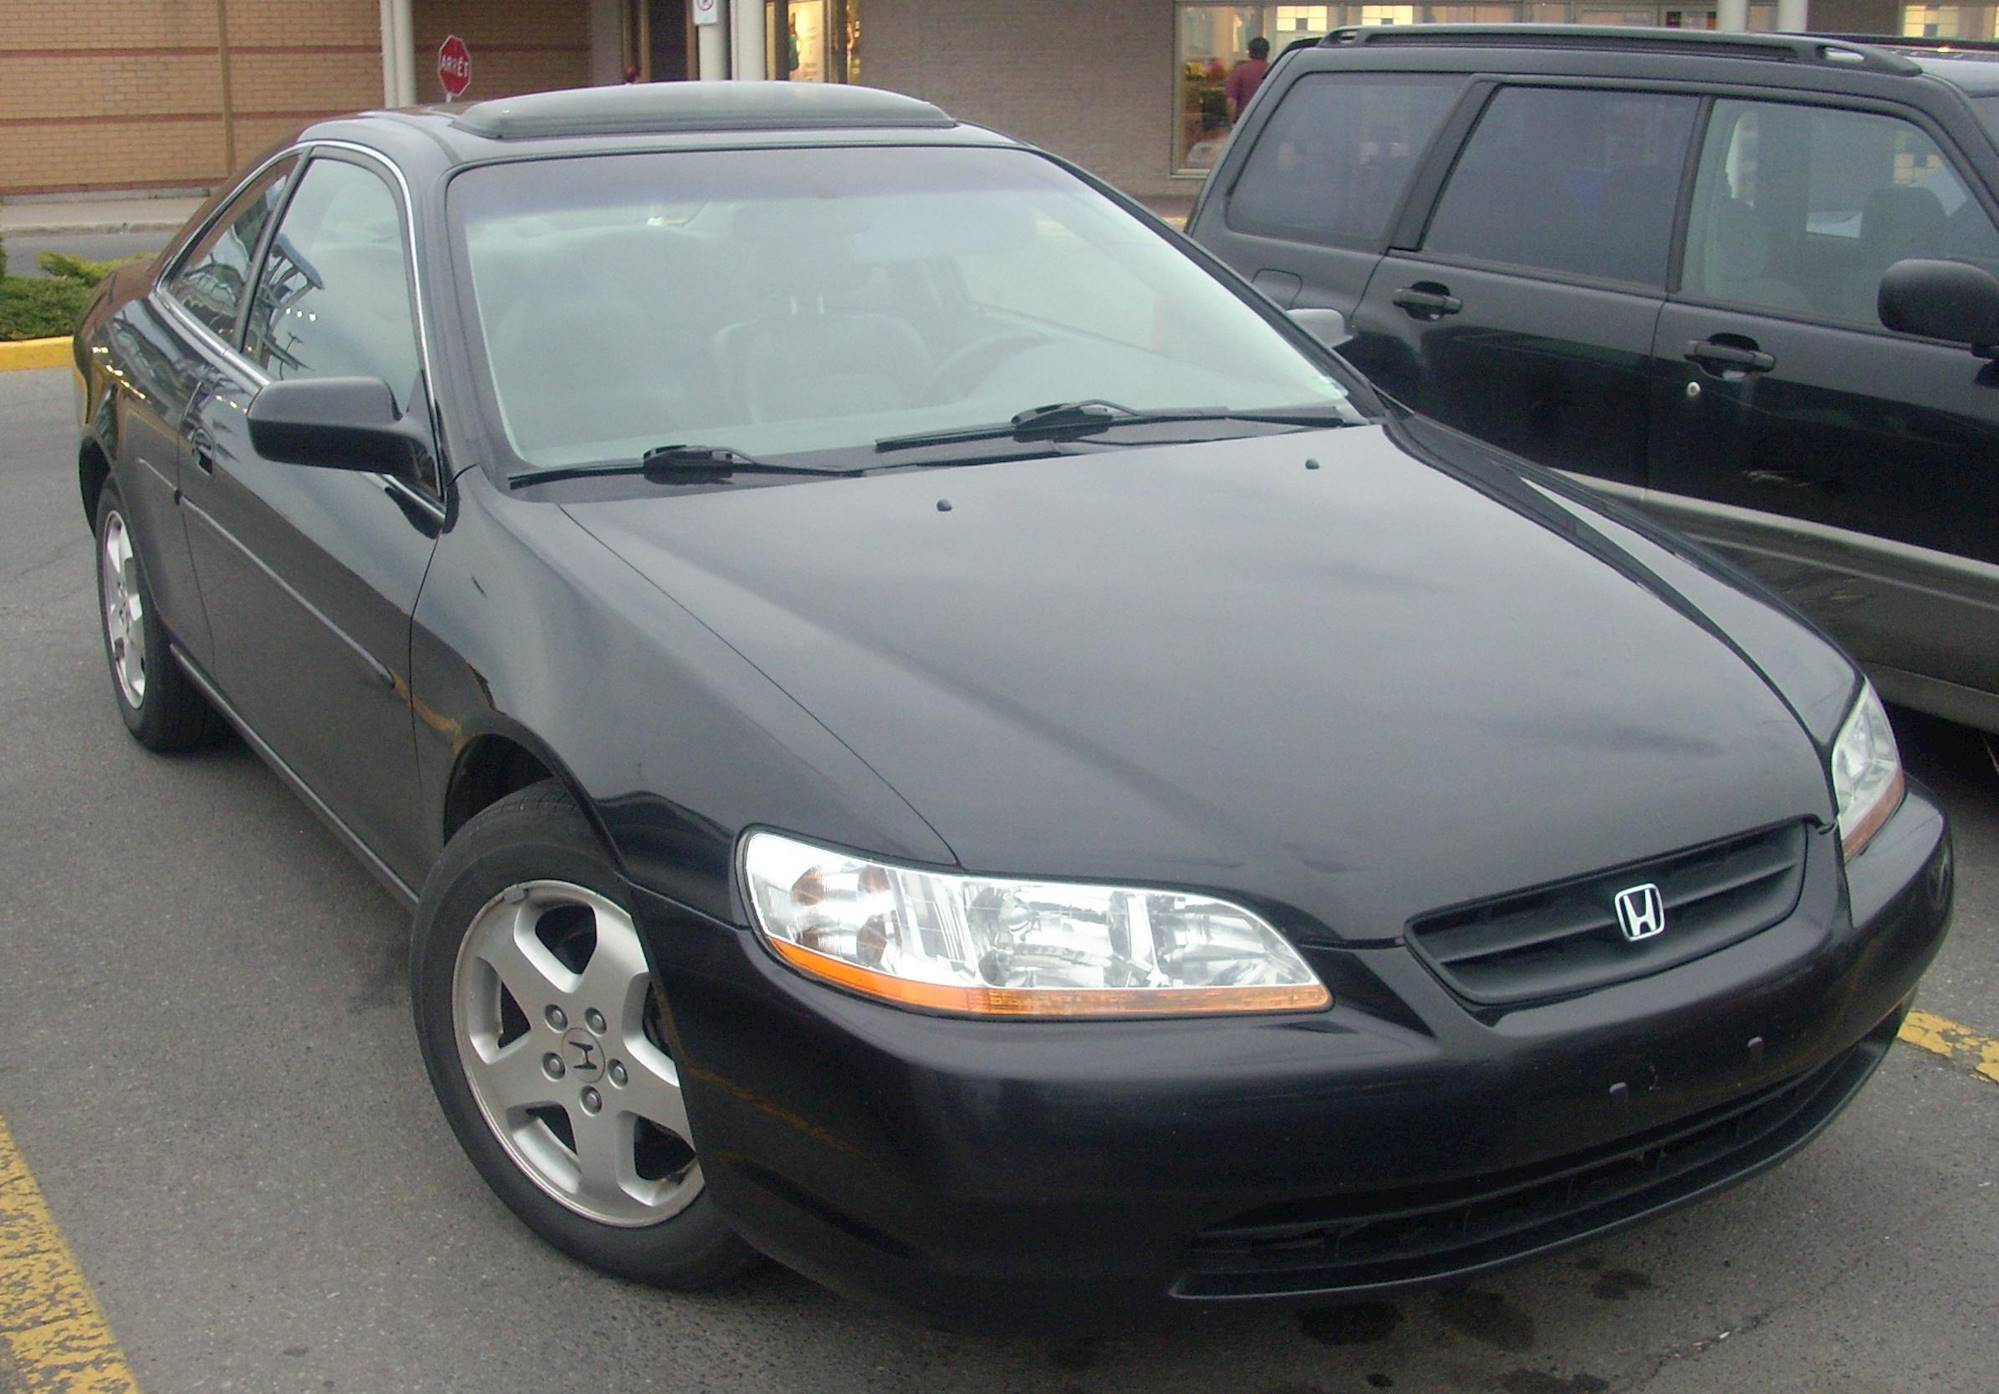 2000 Honda Accord Cars 1998 Honda Accord 2000 Honda Accord Coupe ...